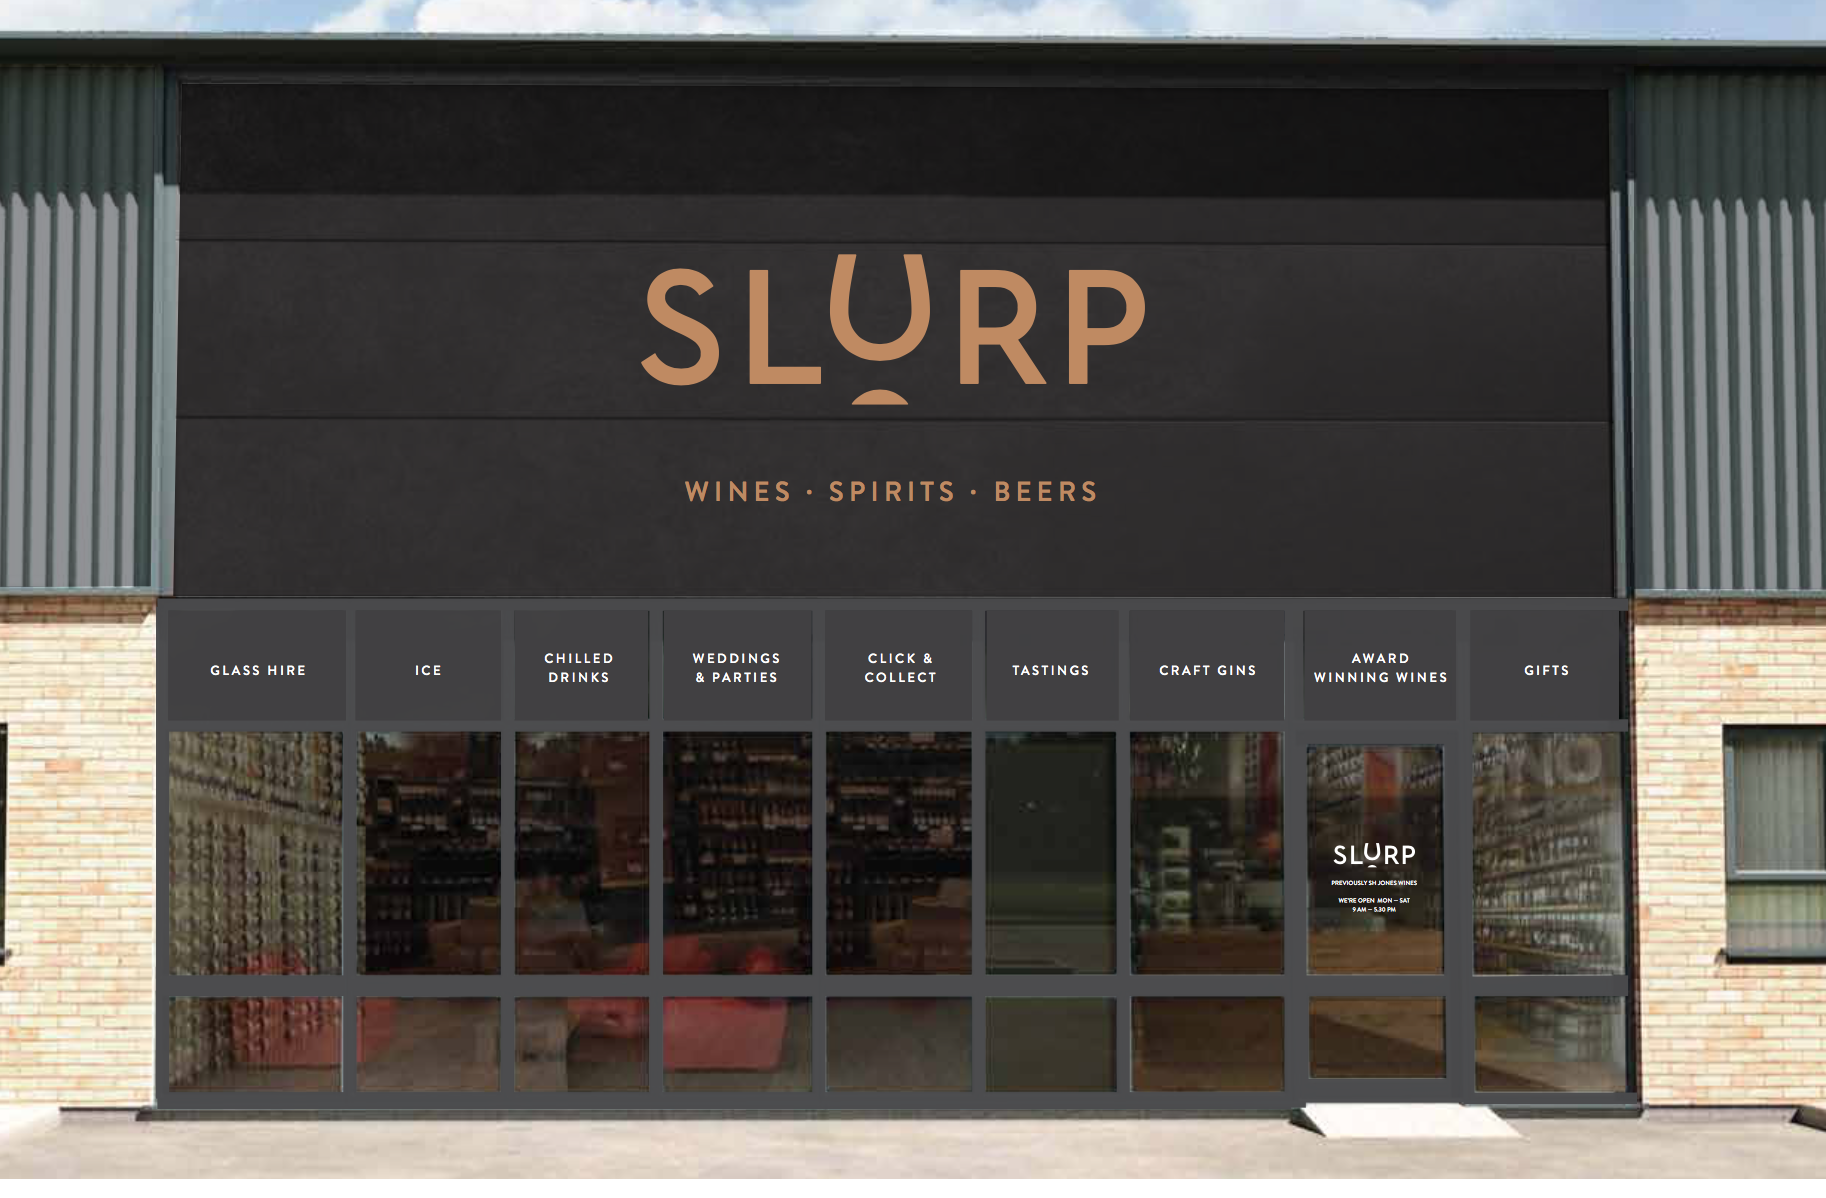 Welcome to the New World of Slurp